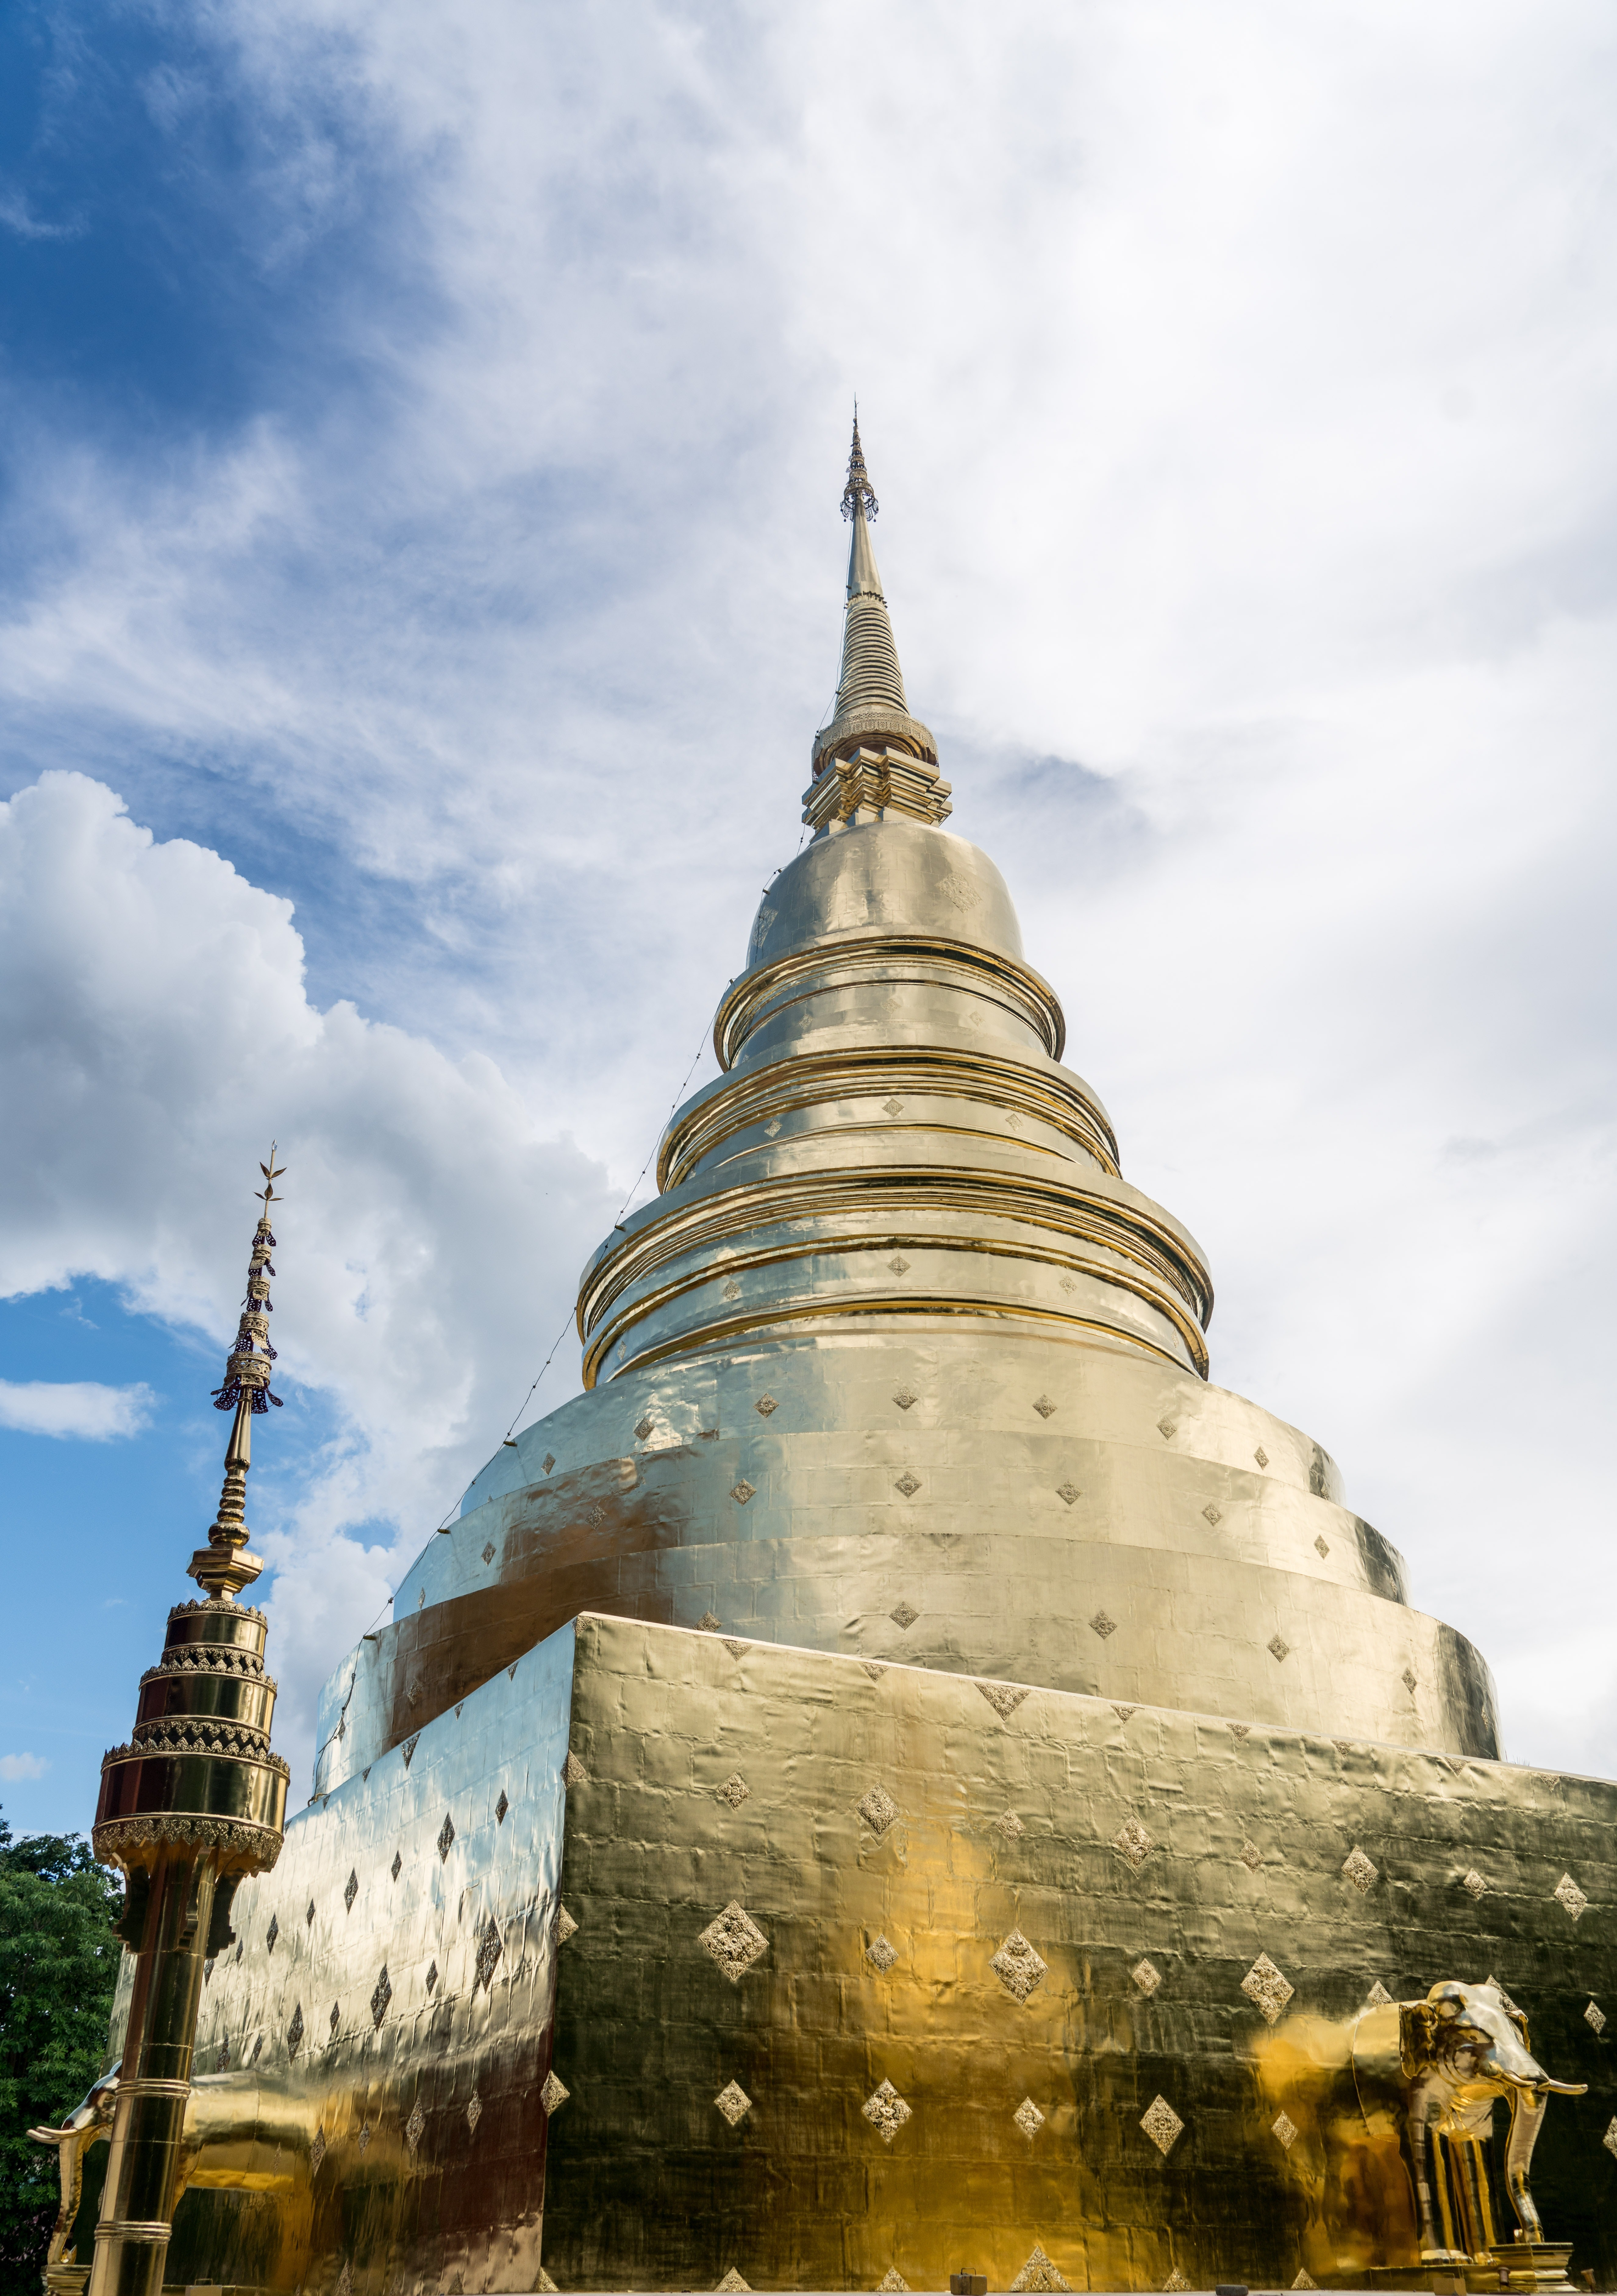 Worm's Eye View of Gold Tower Under Cloudy Sky during Daytime, Ancient, Religion, Wat, Travel, HQ Photo